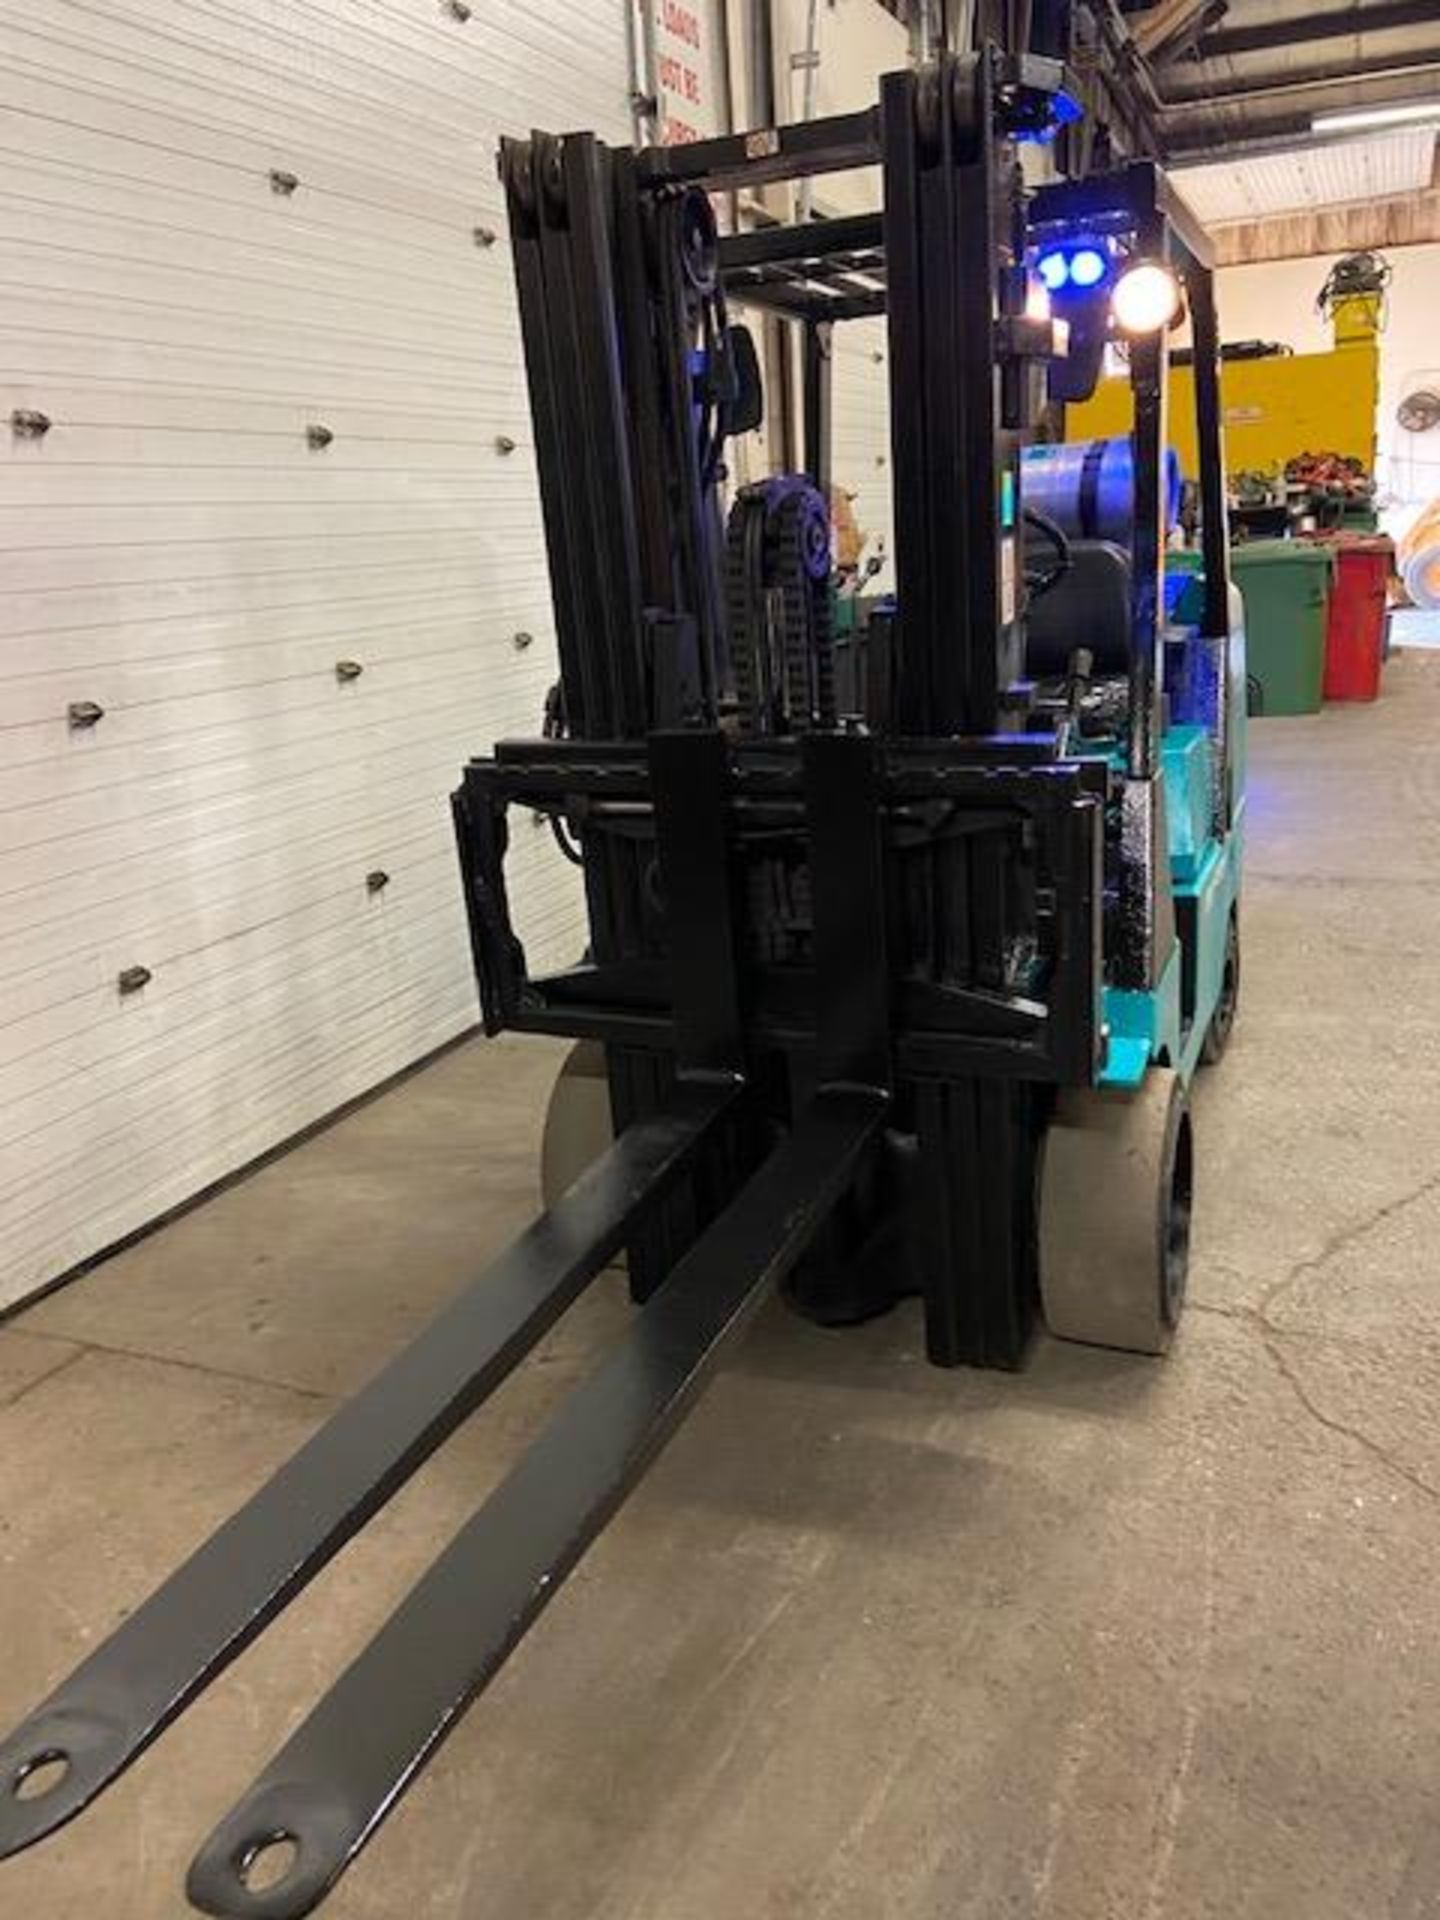 FREE CUSTOMS - Mitsubishi 10000lbs capacity LPG (propane) Forklift with 3-stage mast and sideshift - Image 2 of 3